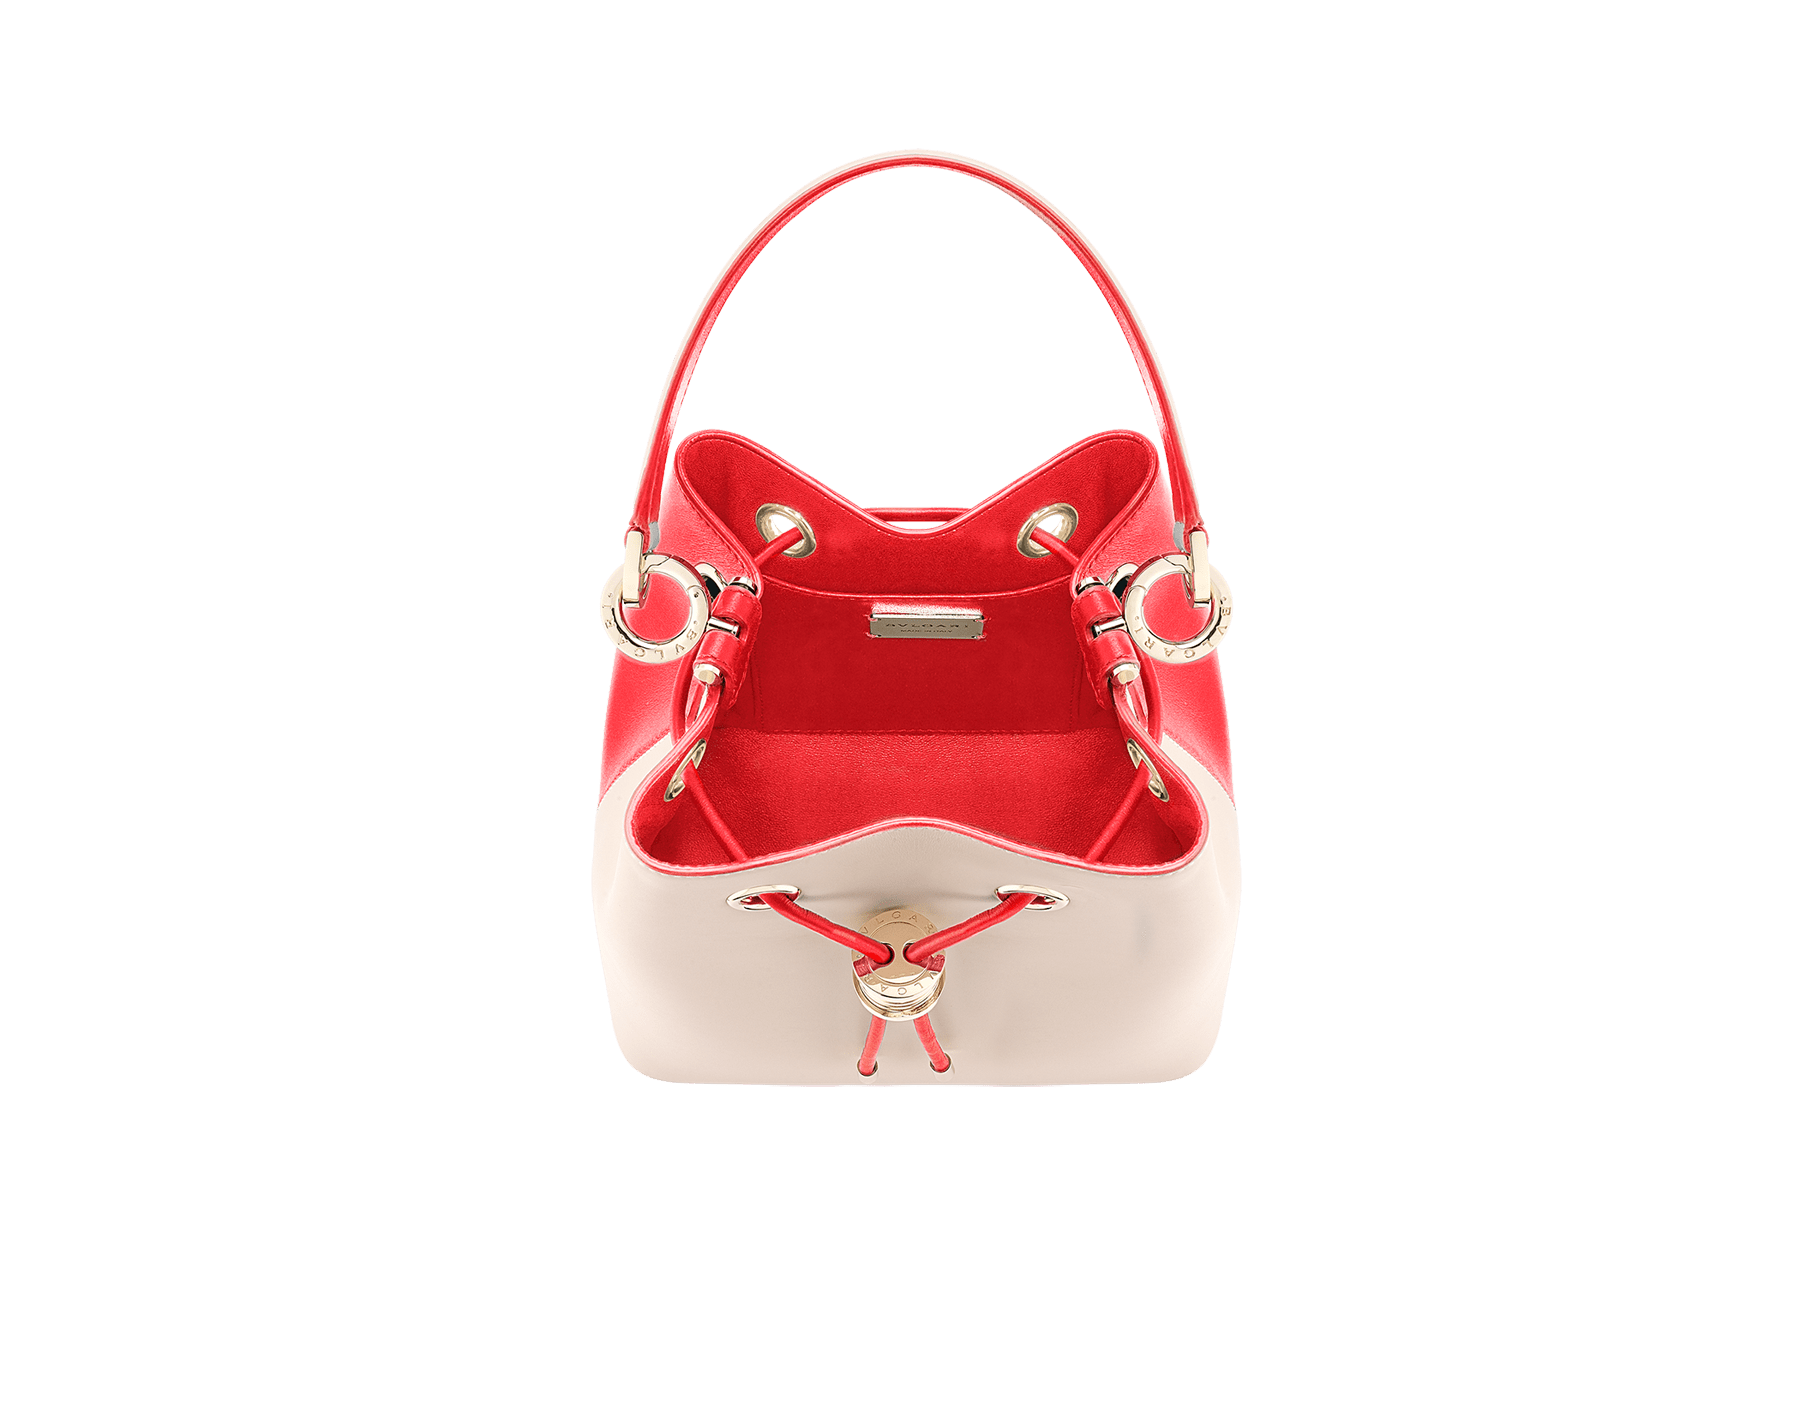 Bucket B.zero1 in milky opal and sea star coral smooth calf leather and sea star coral nappa internal lining. Hardware in light gold plated brass, featuring a B.zero1 décor. 288208 image 4